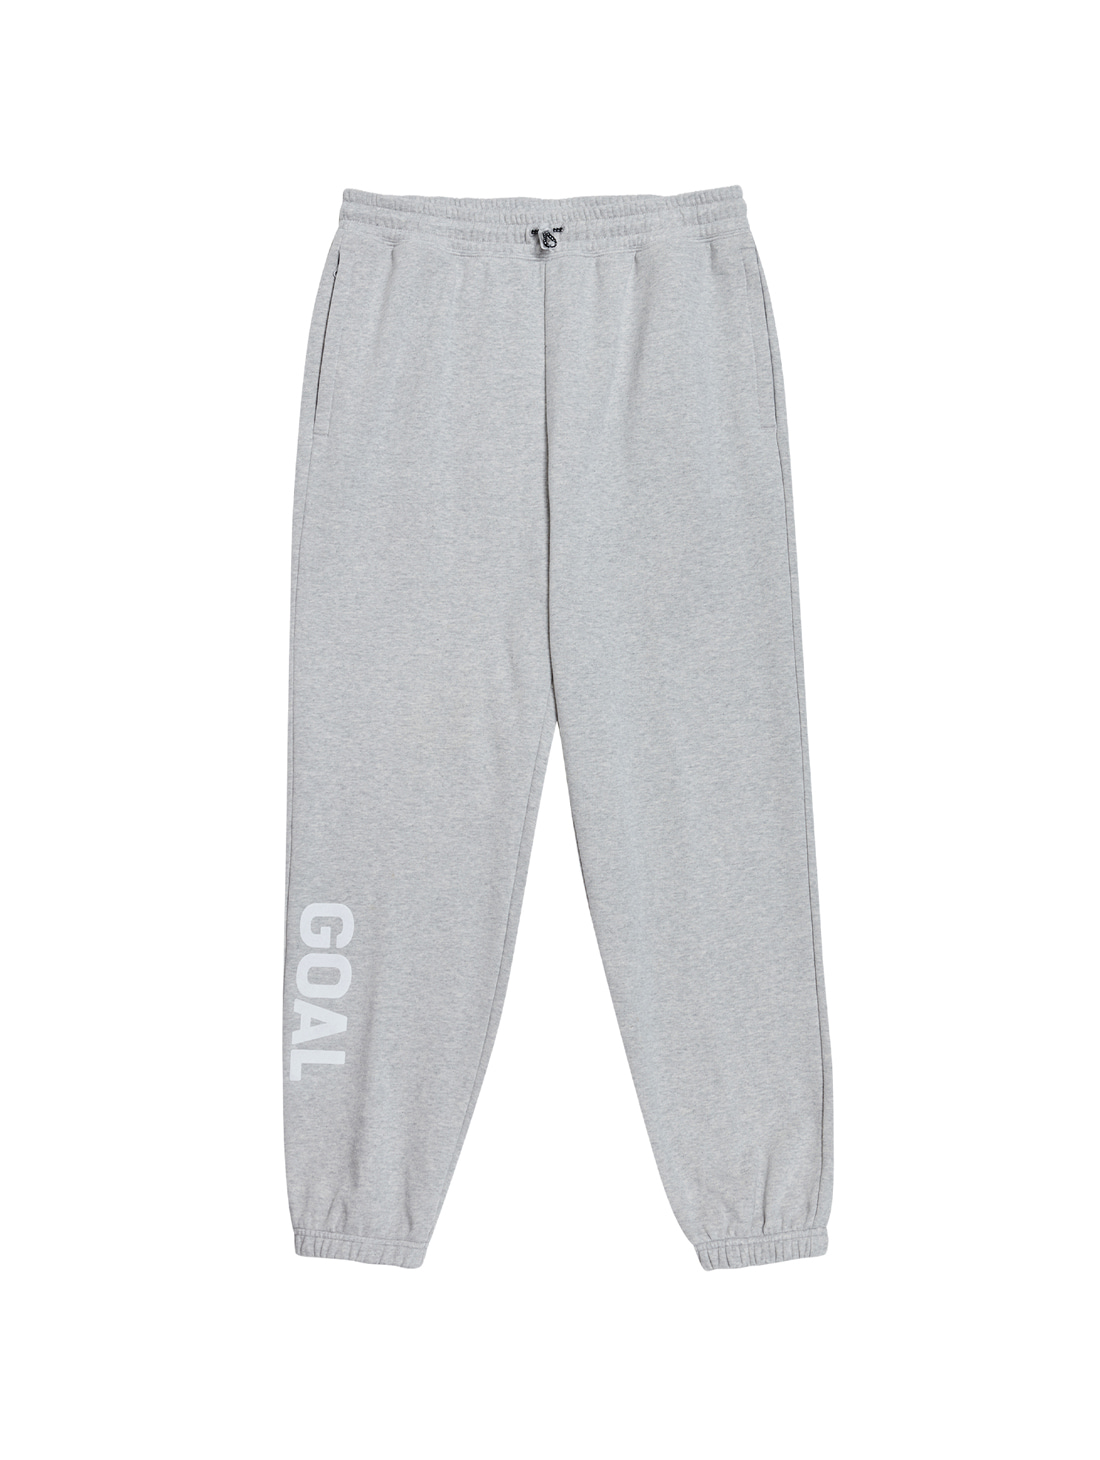 GOALSTUDIO FLOCKING KNIT JOGGER PANTS - GREY